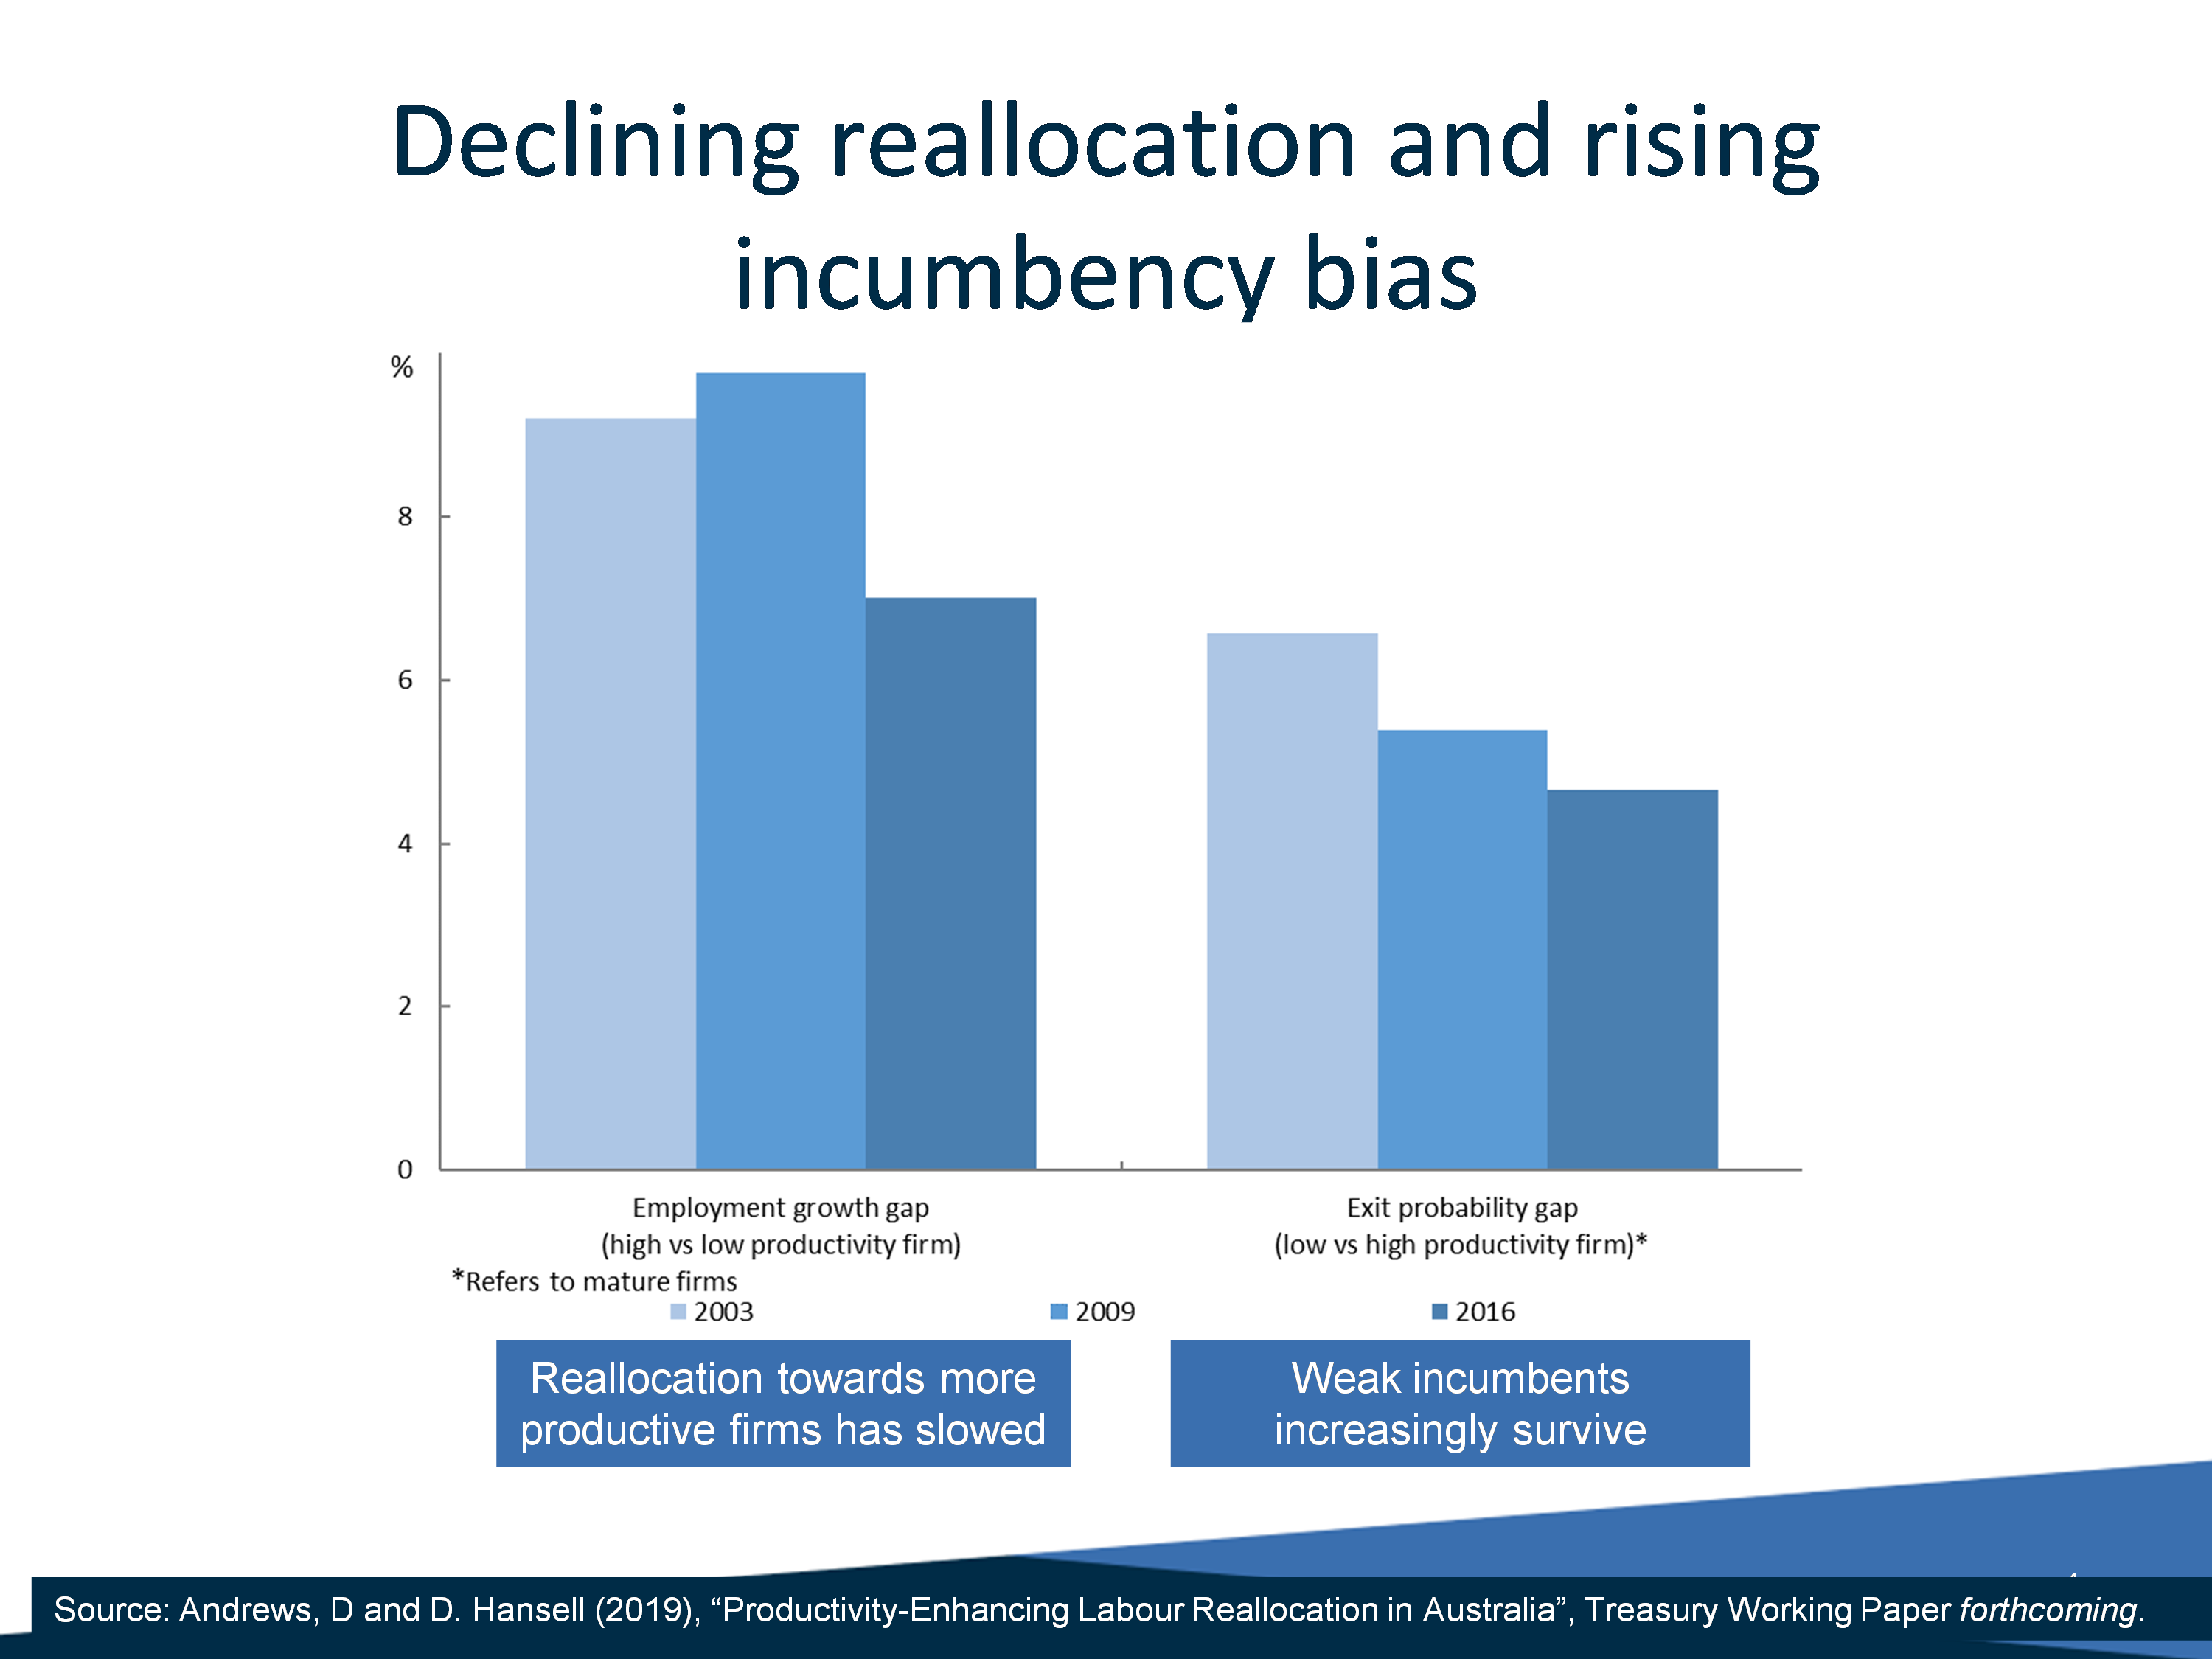 Chart: Declining reallocation and rising incumbency bias